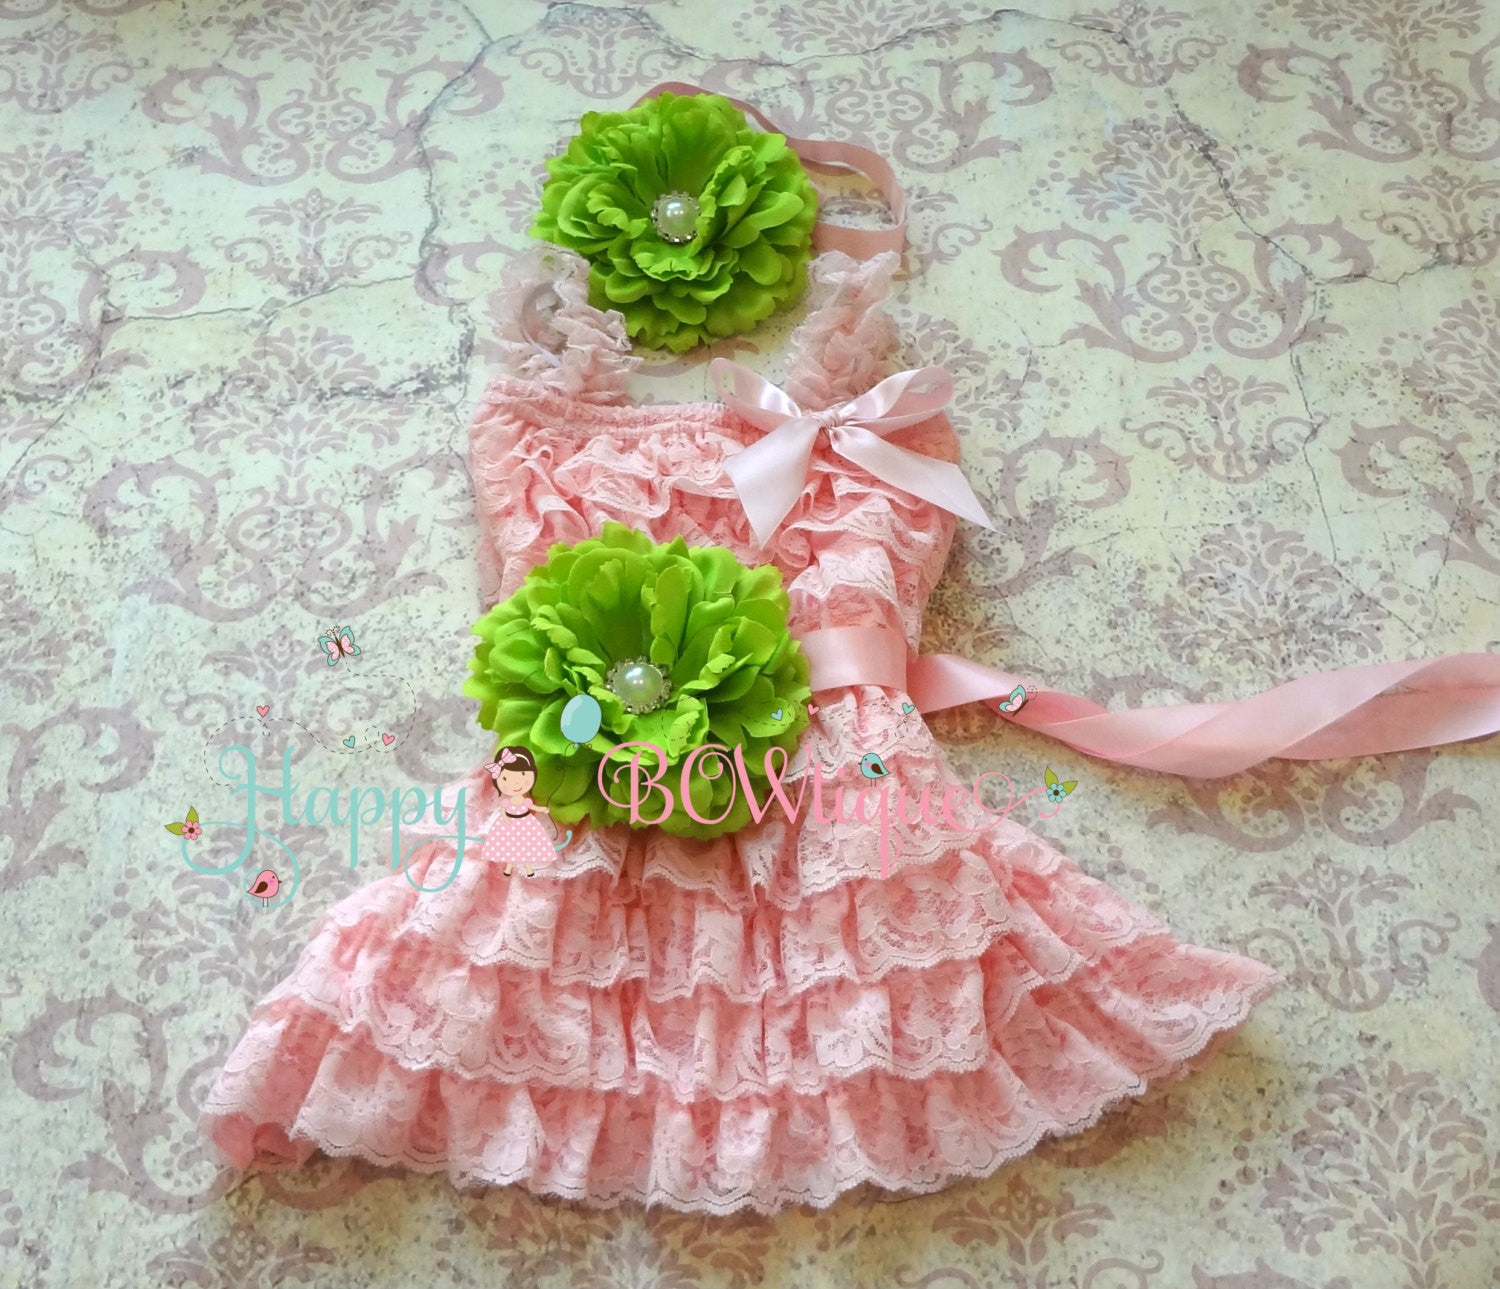 Ivory Pink Flower Girl's Dress set/ Petti Lace Dress Set - Happy BOWtique - children's clothing, Baby Girl clothing